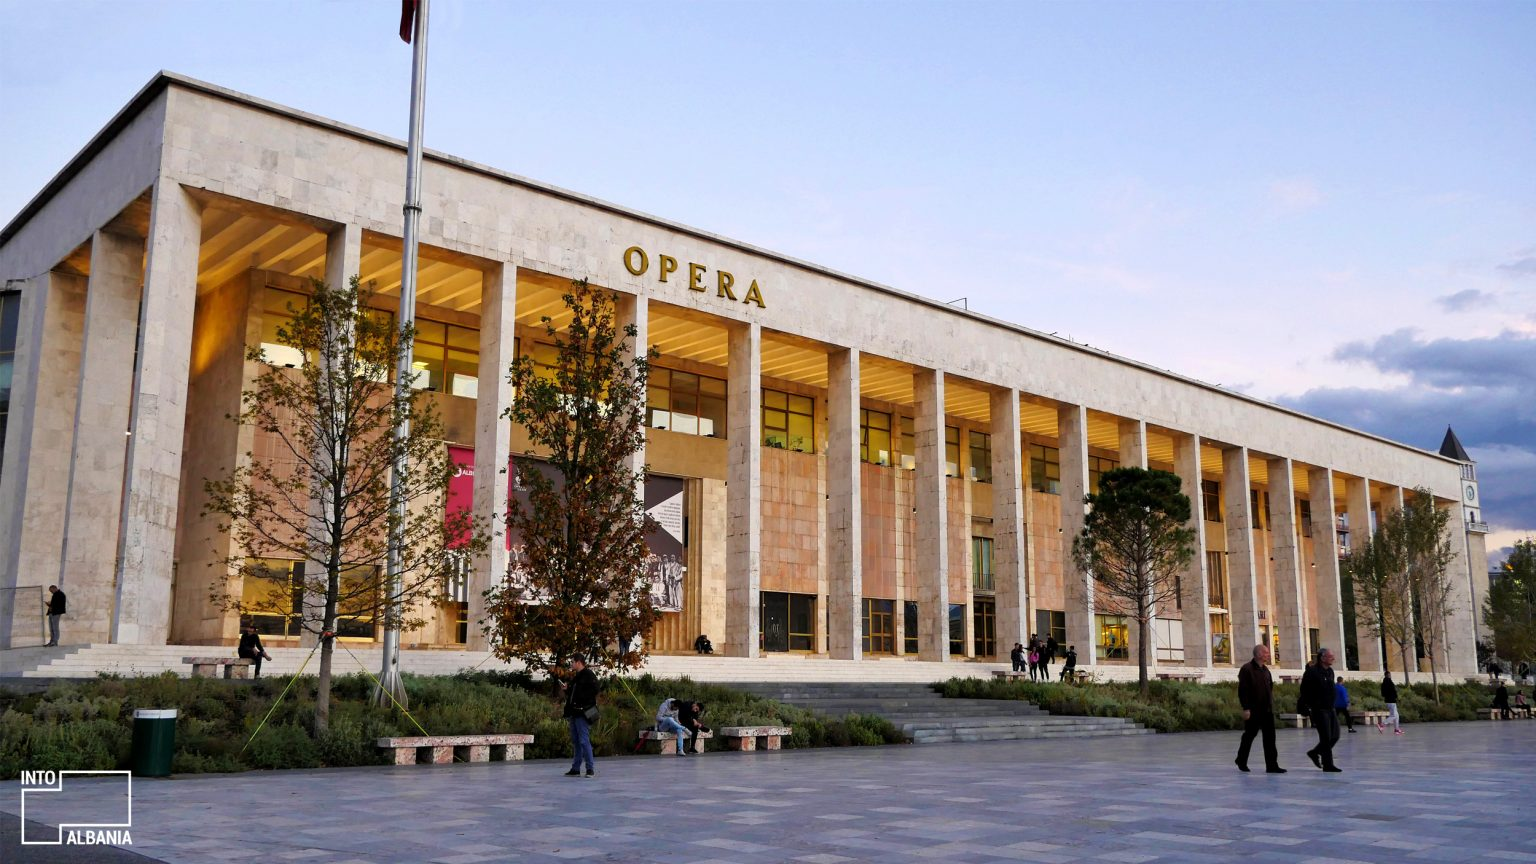 The Opera House in Skanderbeg Square Tirana